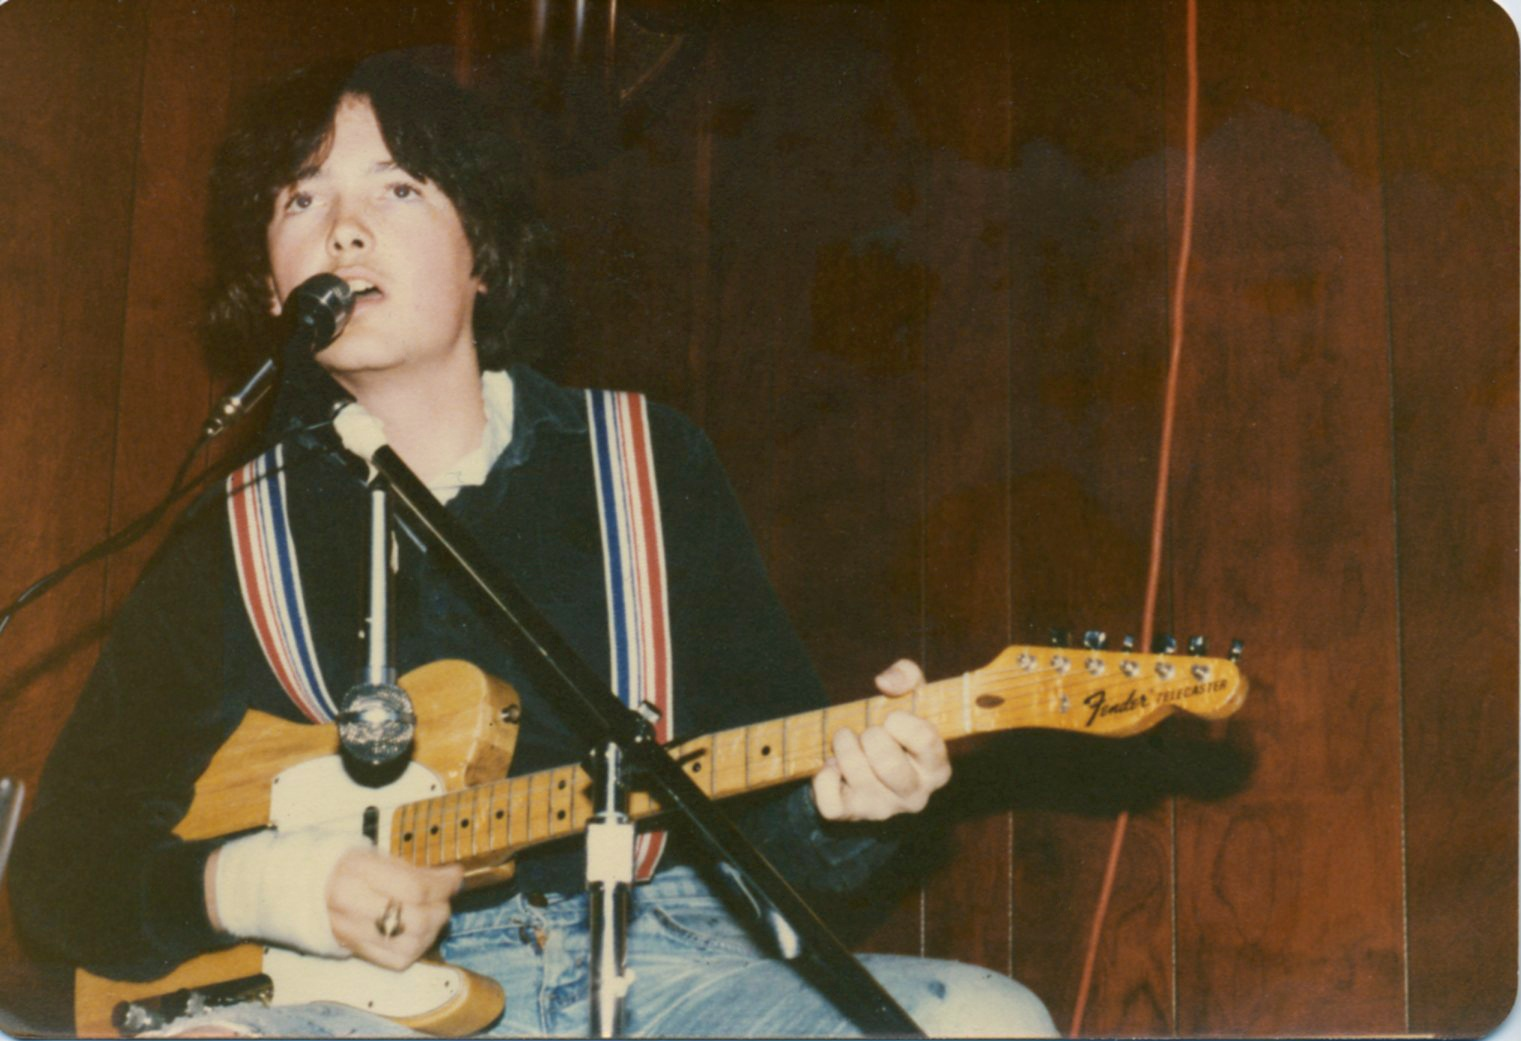 Art Coulson performing at the Student Prince Haufbrau in Durham, NC, in 1980. He is playing a Fender Telecaster guitar and wearing striped suspenders